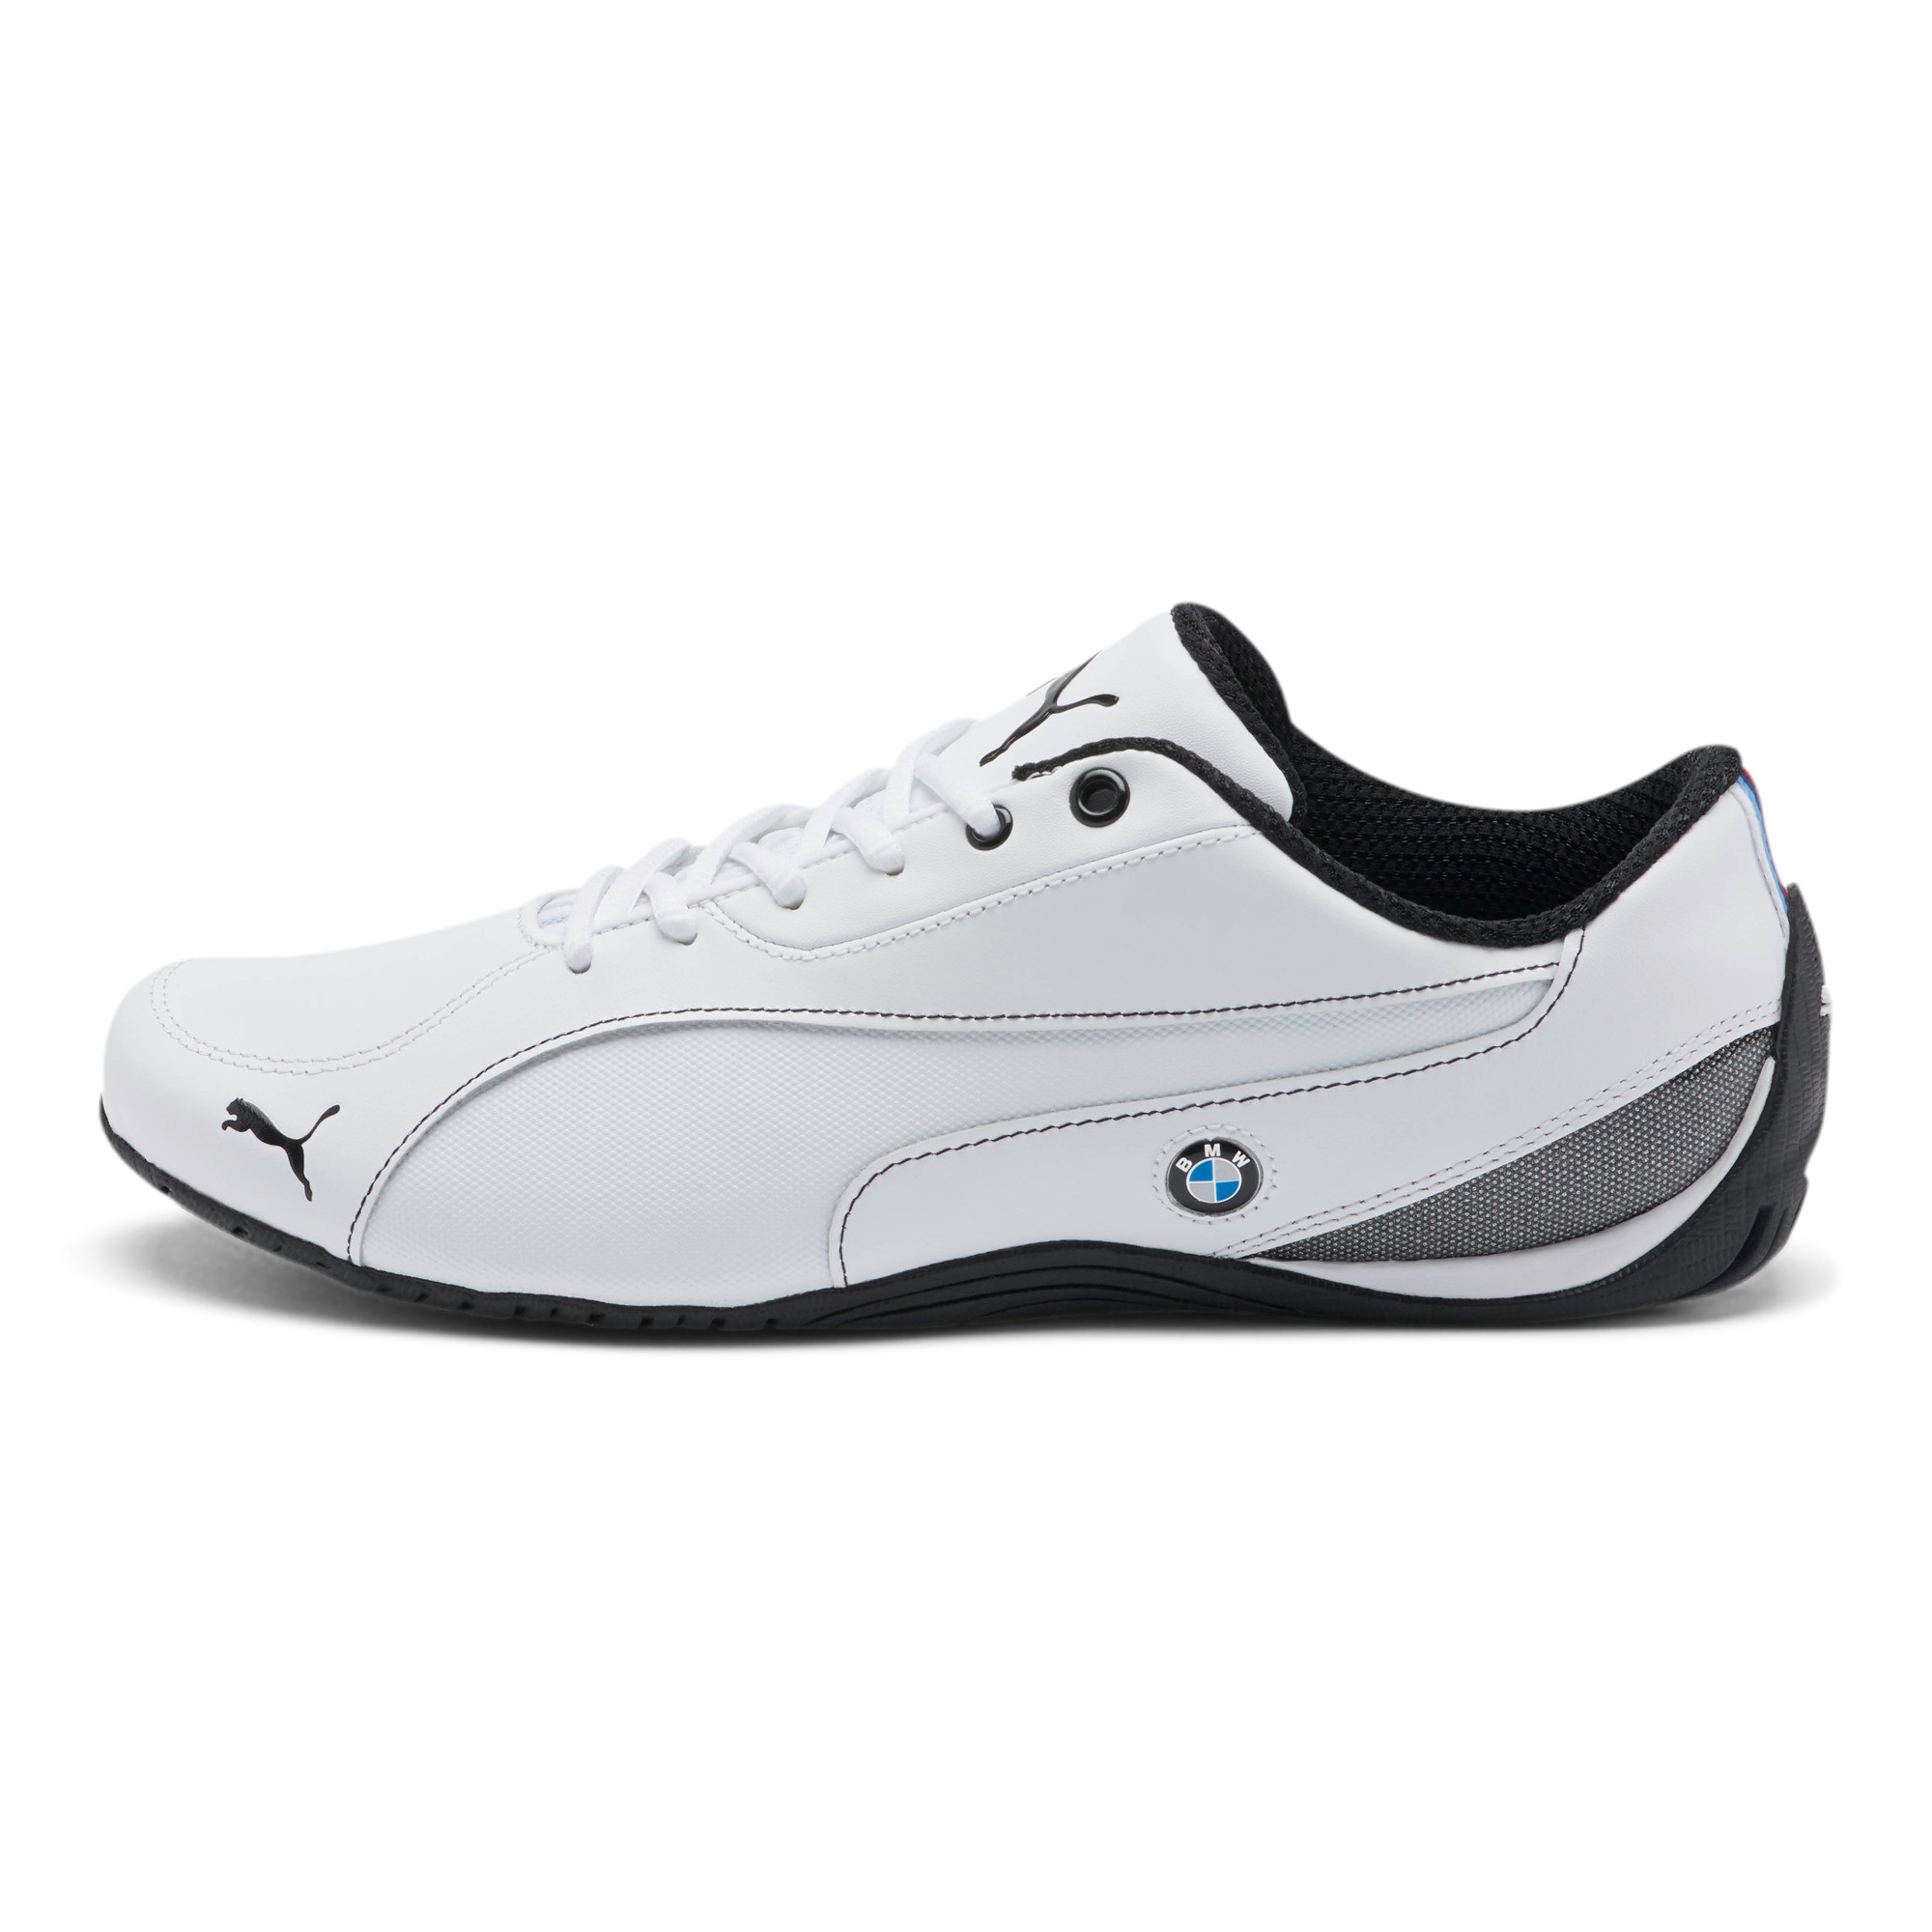 PUMA-Men-039-s-BMW-M-Motorsport-Drift-Cat-5-NM-Shoes thumbnail 10